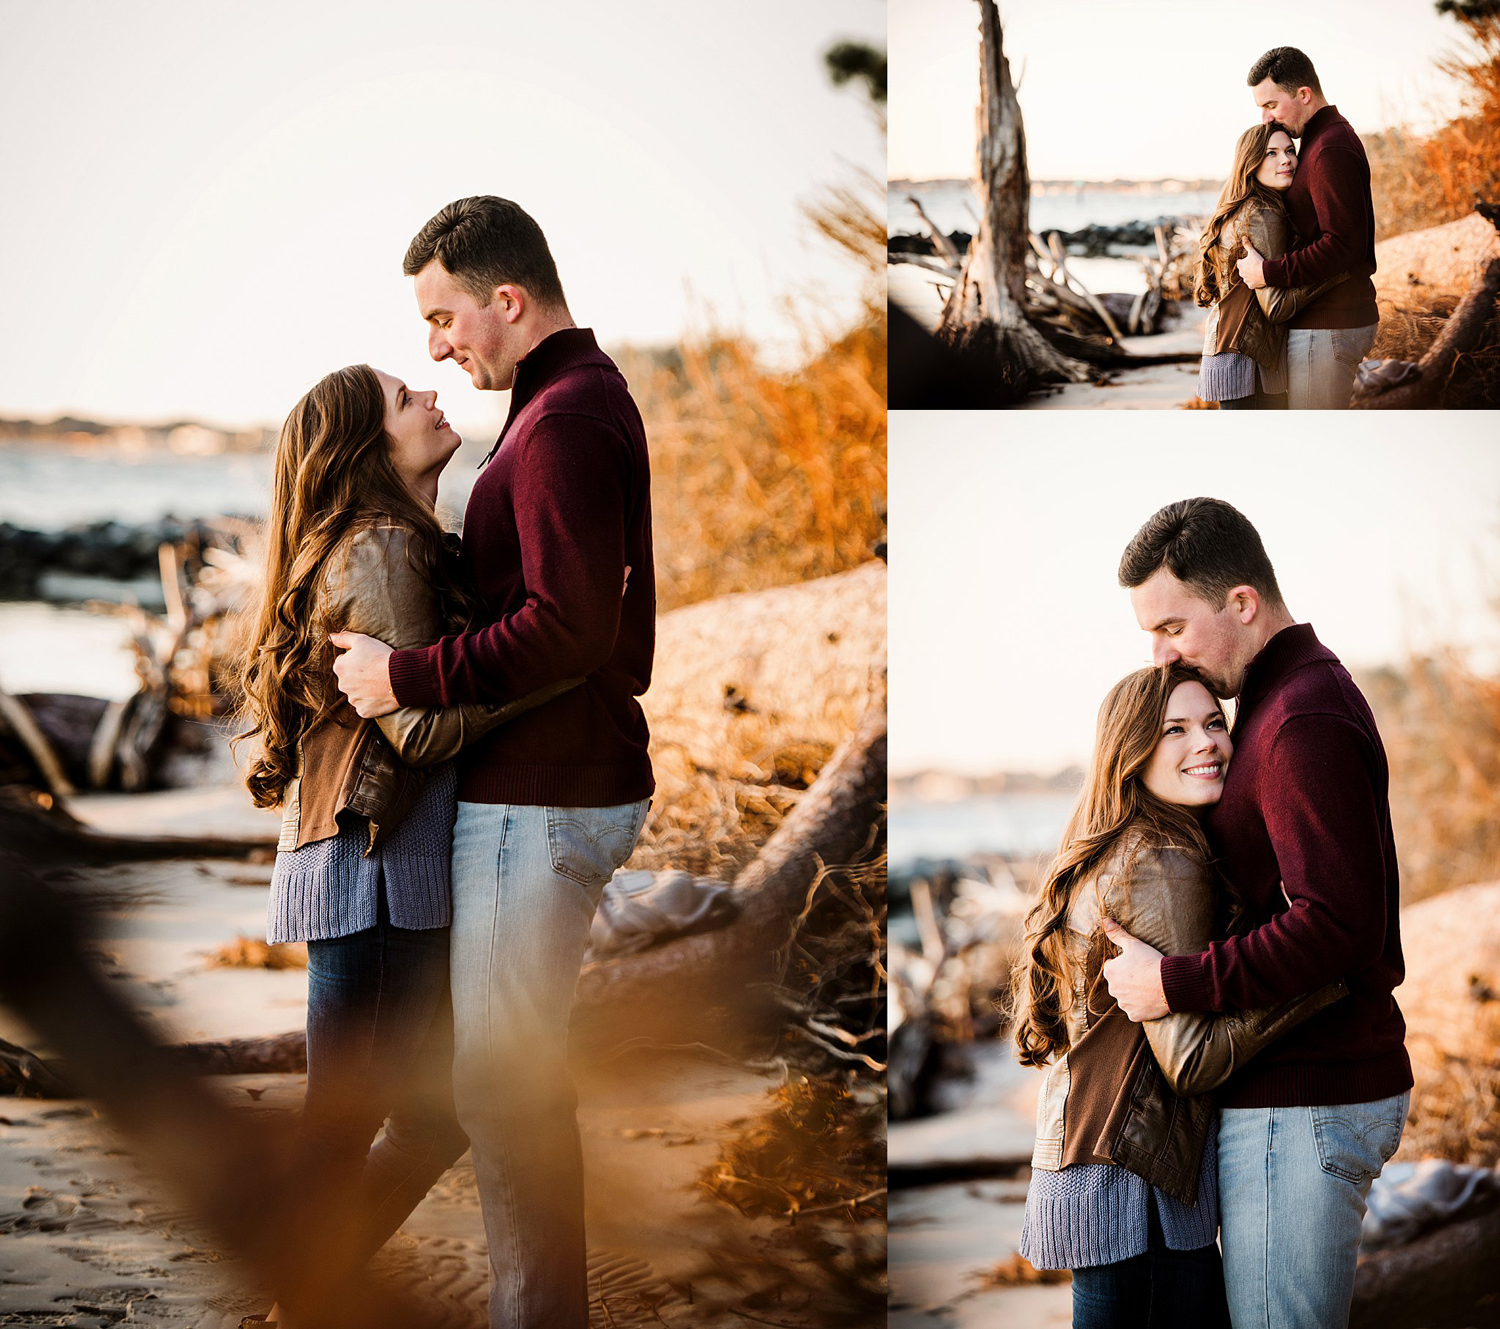 hampton-roads-photographer-melissa-bliss-photography-creates-beautiful-engagement-session-pictures.jpg